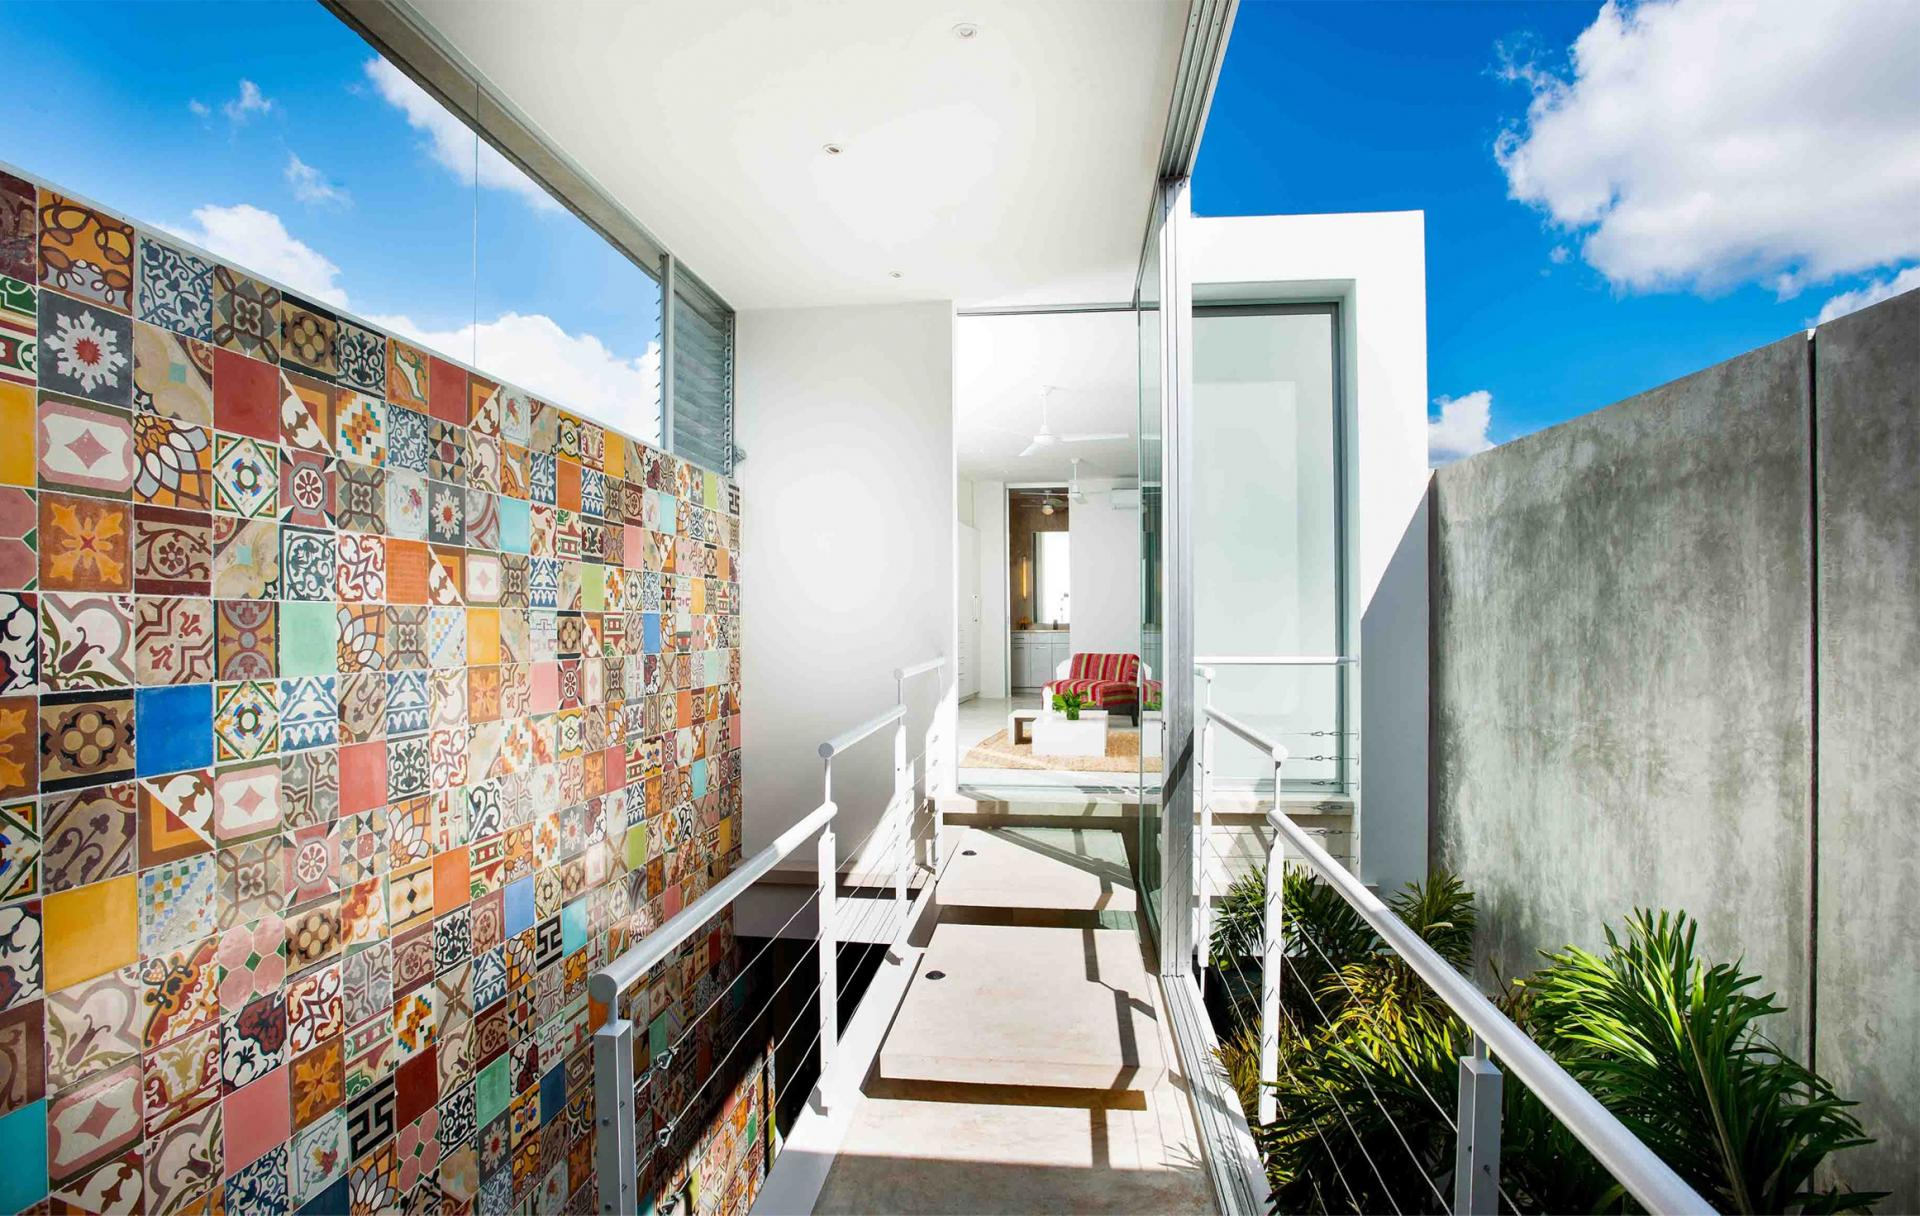 B+H 45 residence in the historic centre of the city of Merida by H. Ponce arquitectos-04